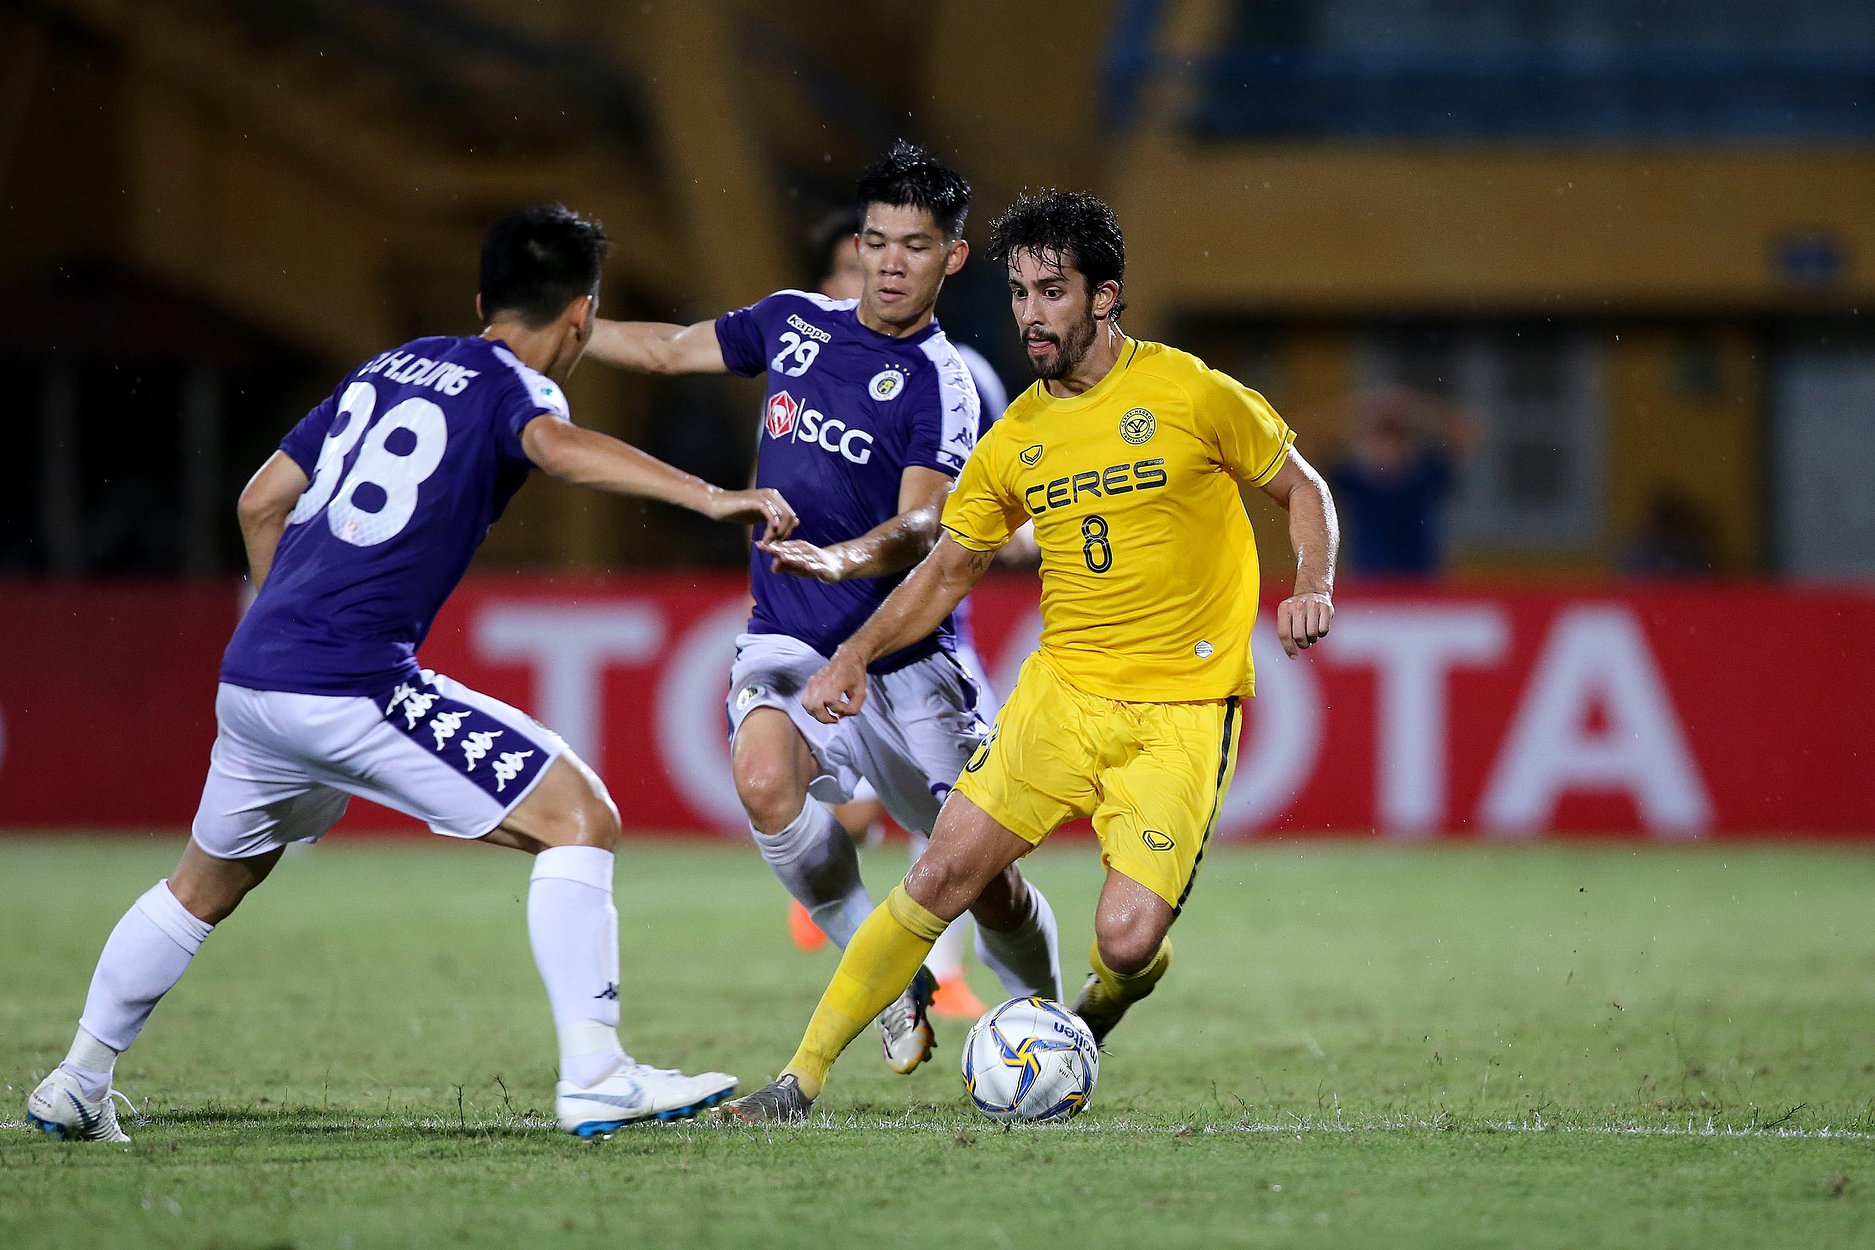 Hanoi Ousts Ceres Negros In Afc Cup